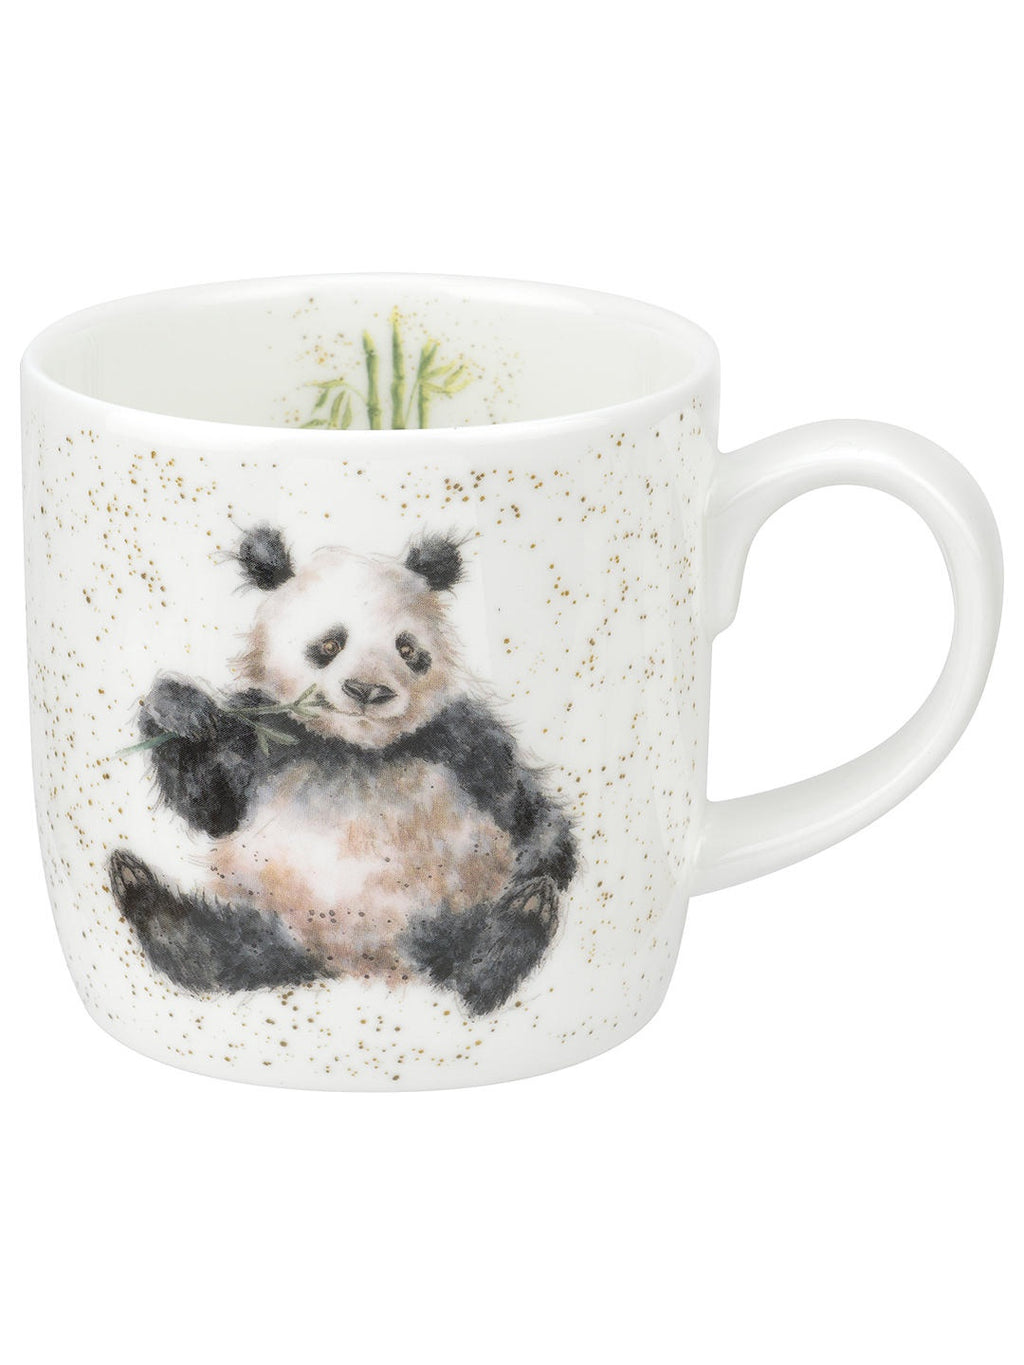 Mug 11oz Bamboozled- Wrendale - Britannia Kitchen & Home Calgary